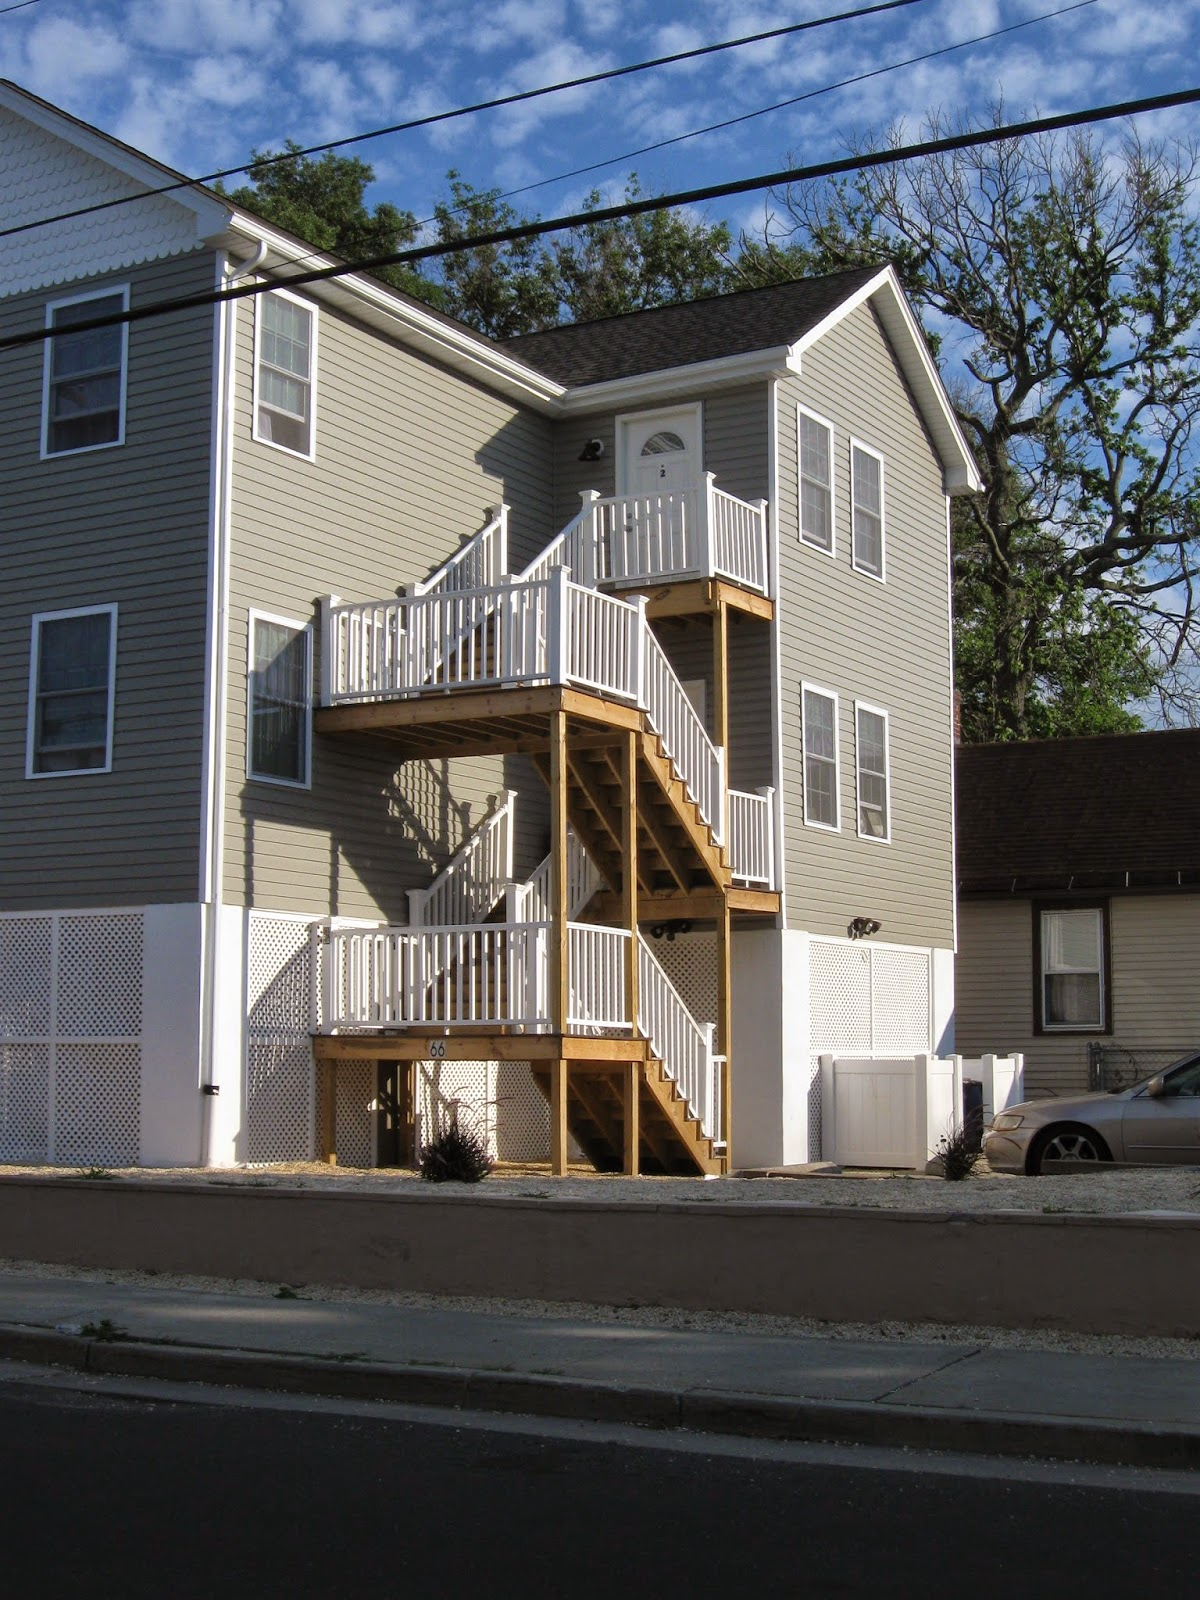 Keenbug tall houses of keansburg union beach for Concrete pilings for house